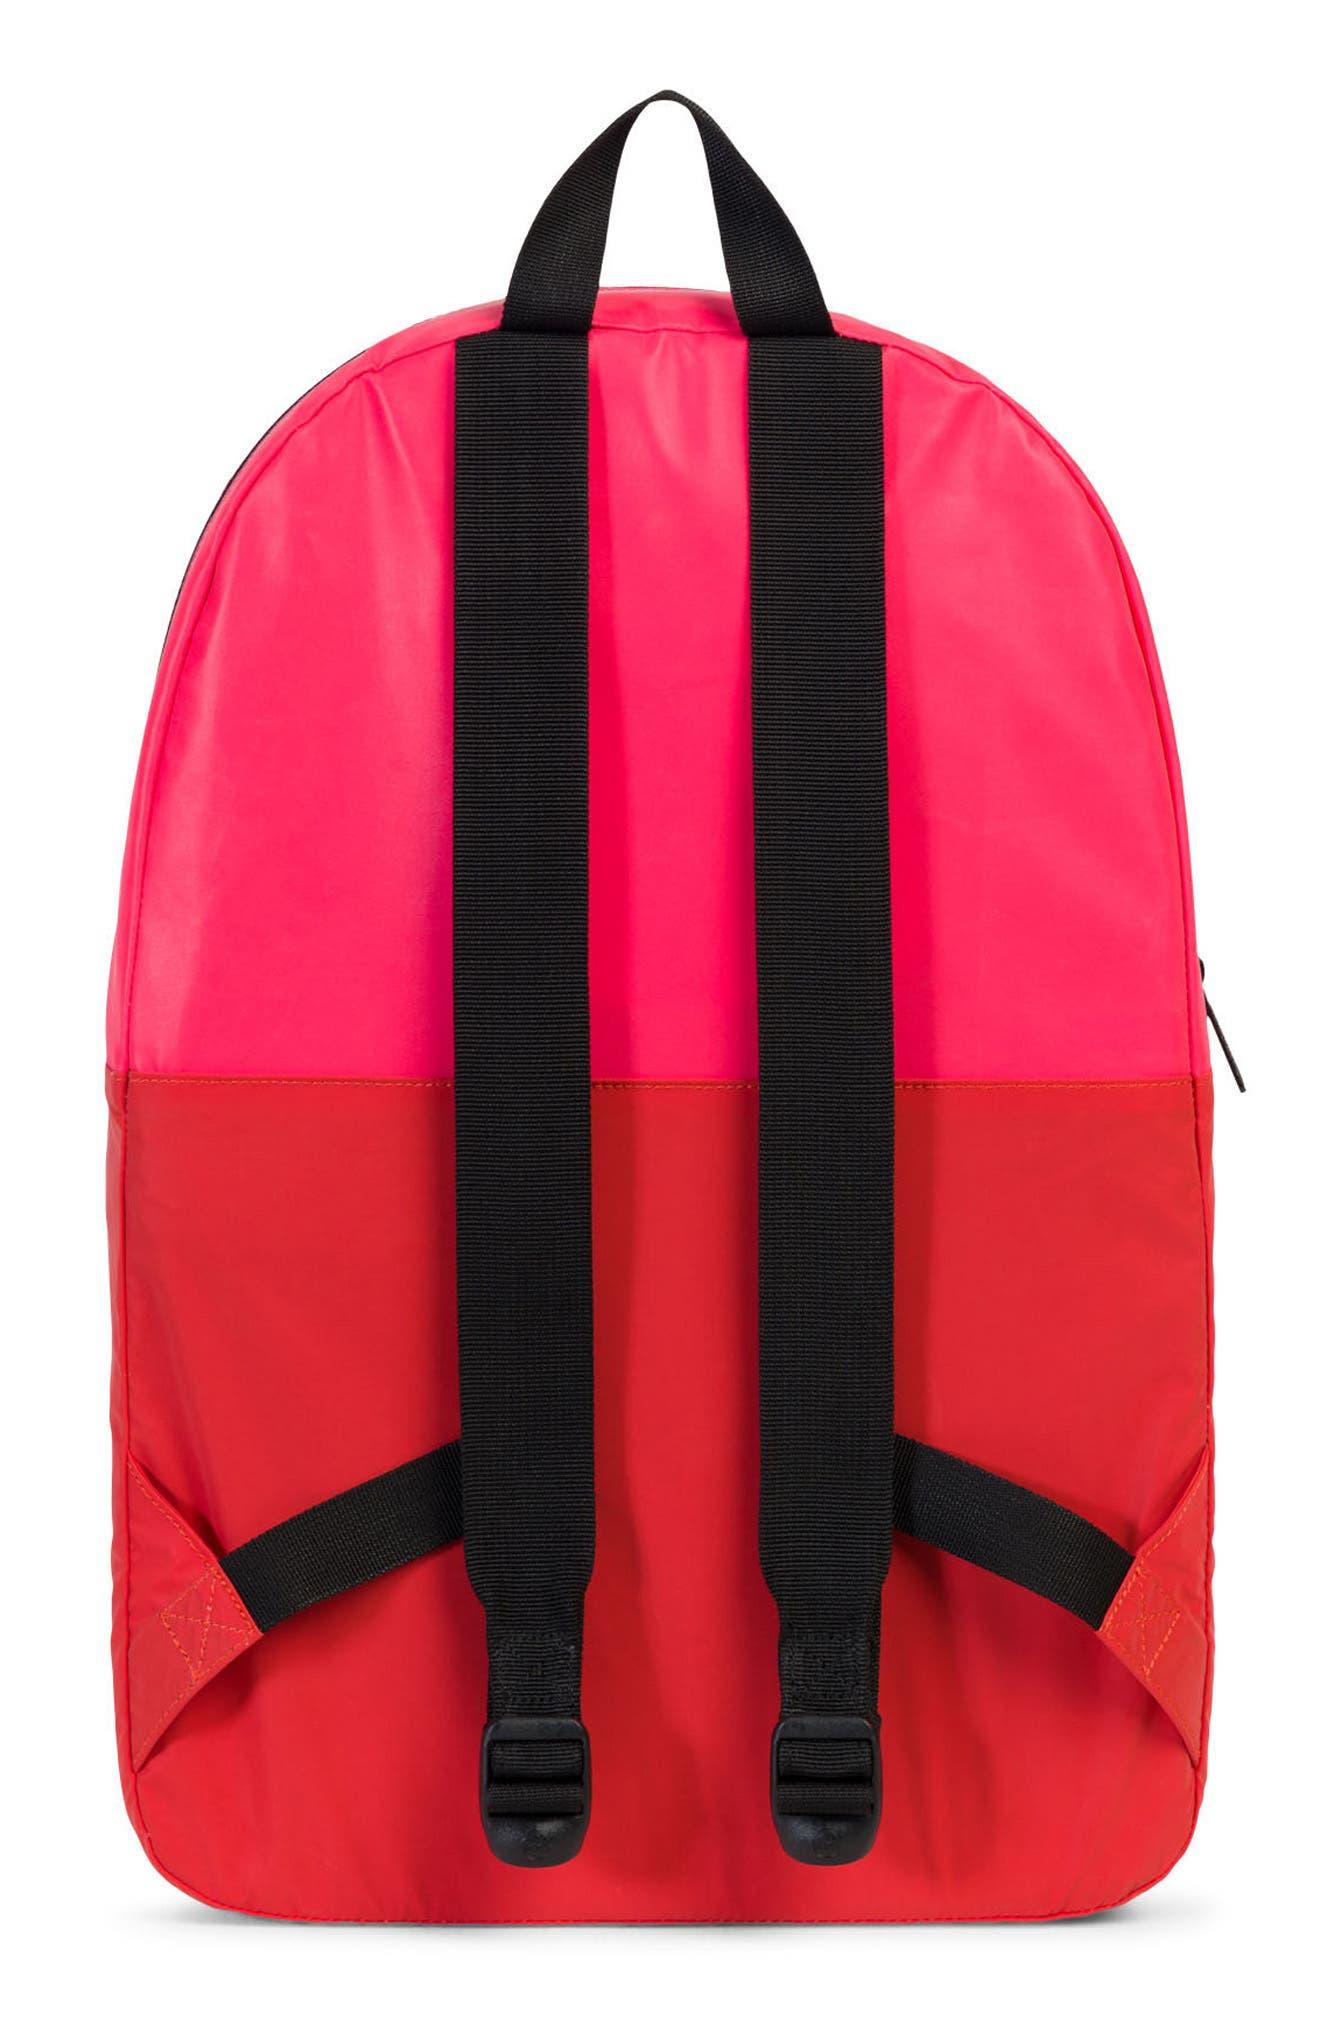 Heritage Reflective Backpack,                             Alternate thumbnail 4, color,                             Neon Pink Reflective/ Red